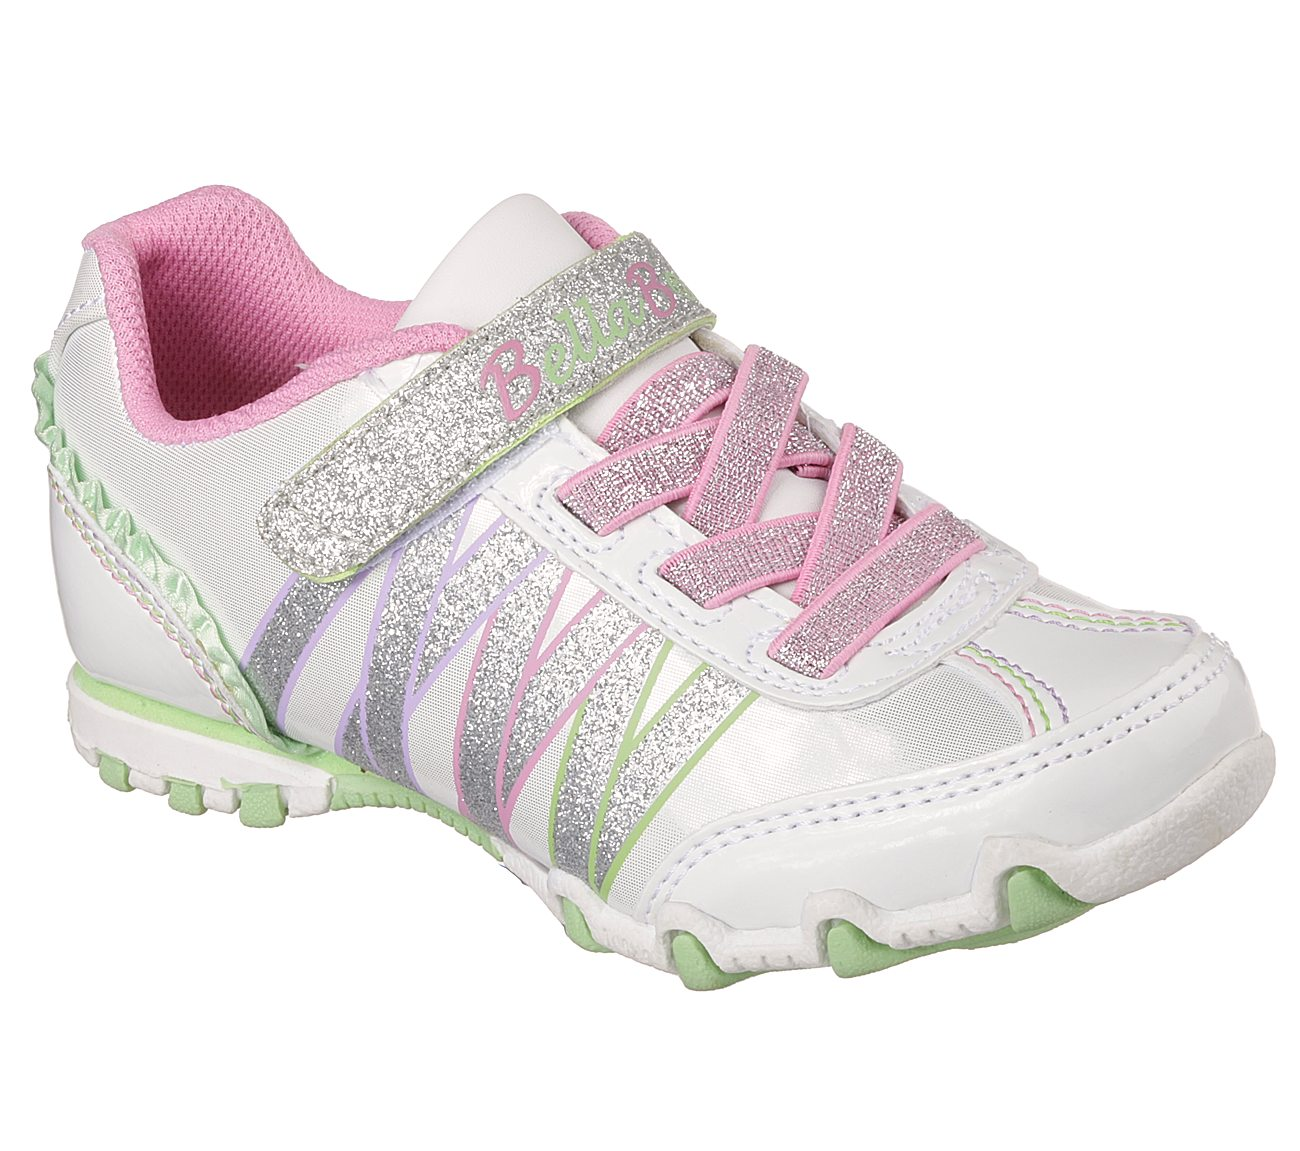 skechers ballerina sale Sale,up to 62